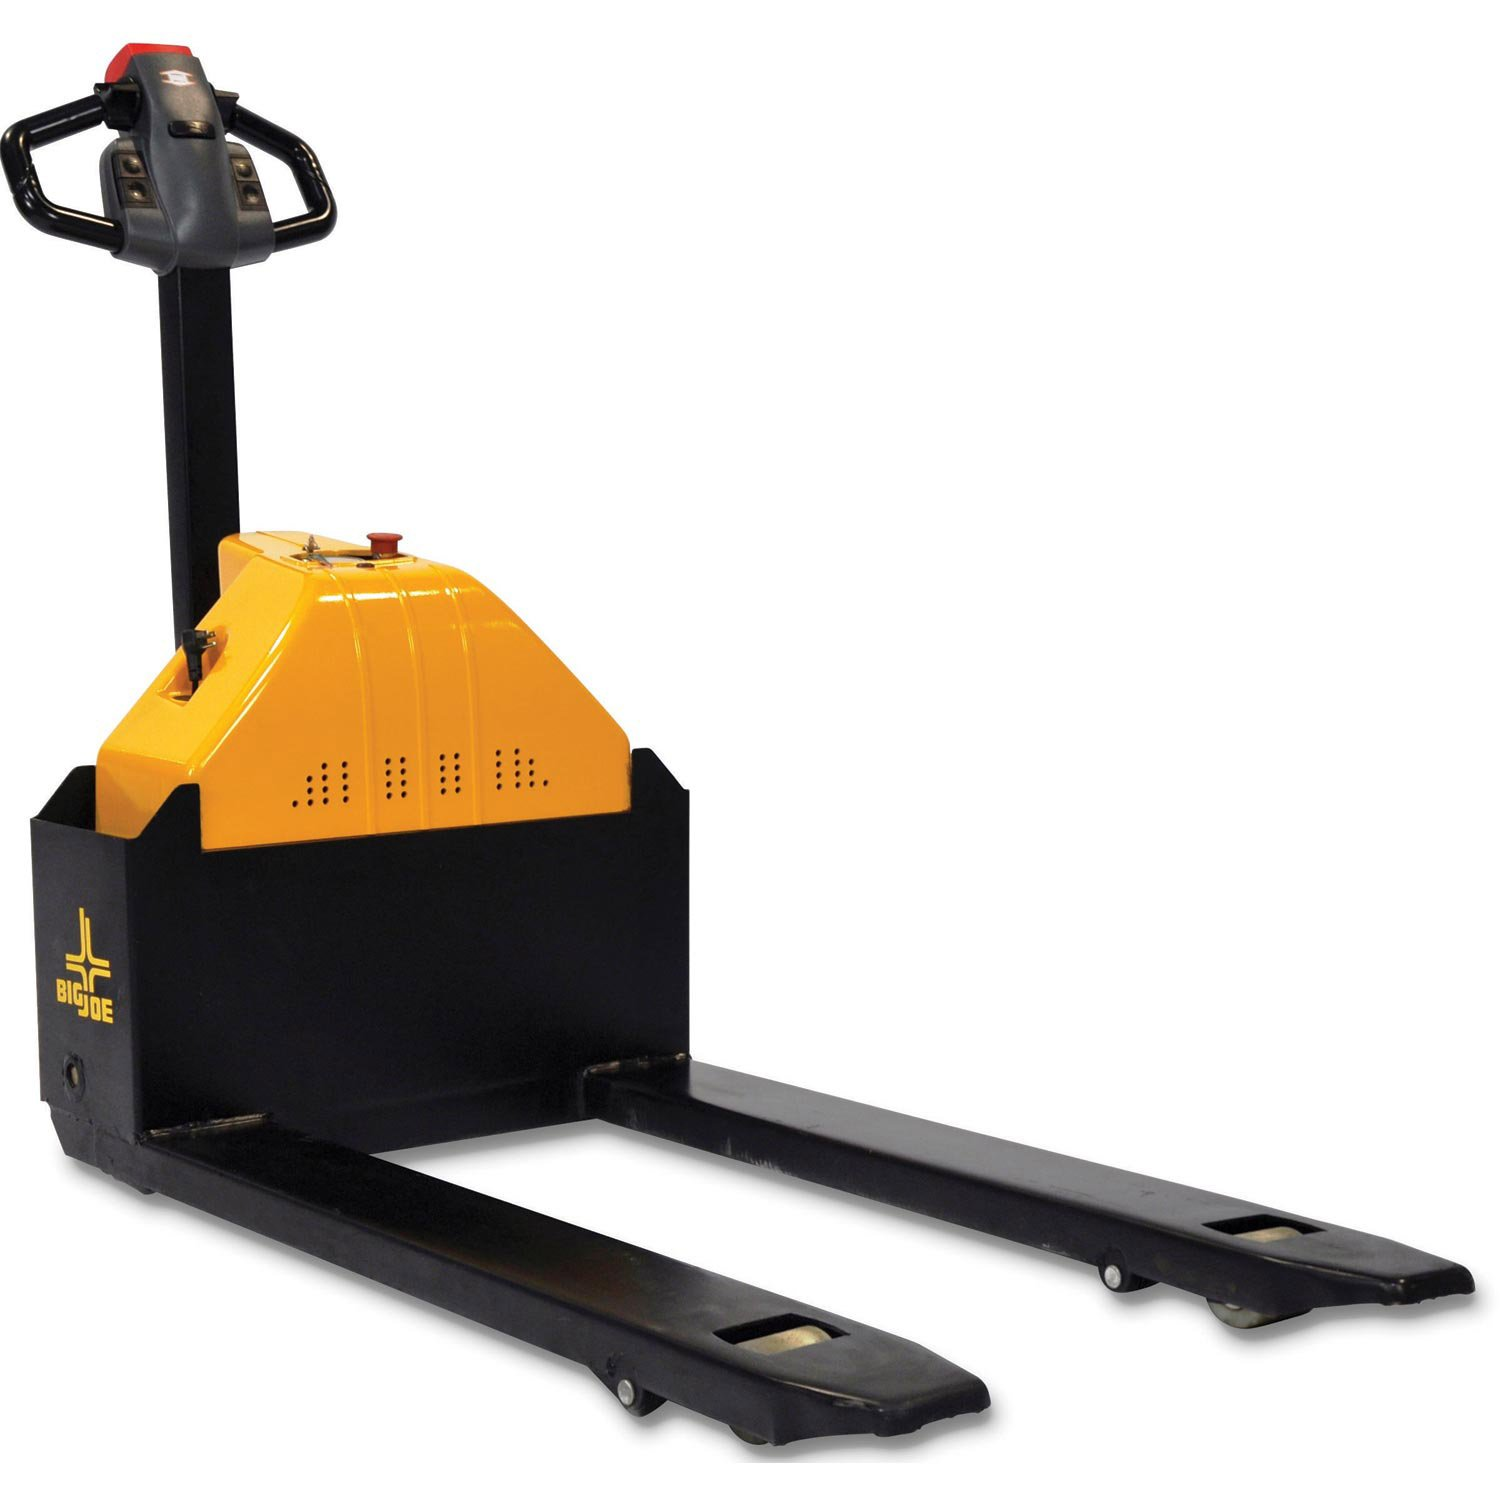 Big Joe E30 Fully Powered Pallet Truck - Pallet Jack - 27'' Wide Forks